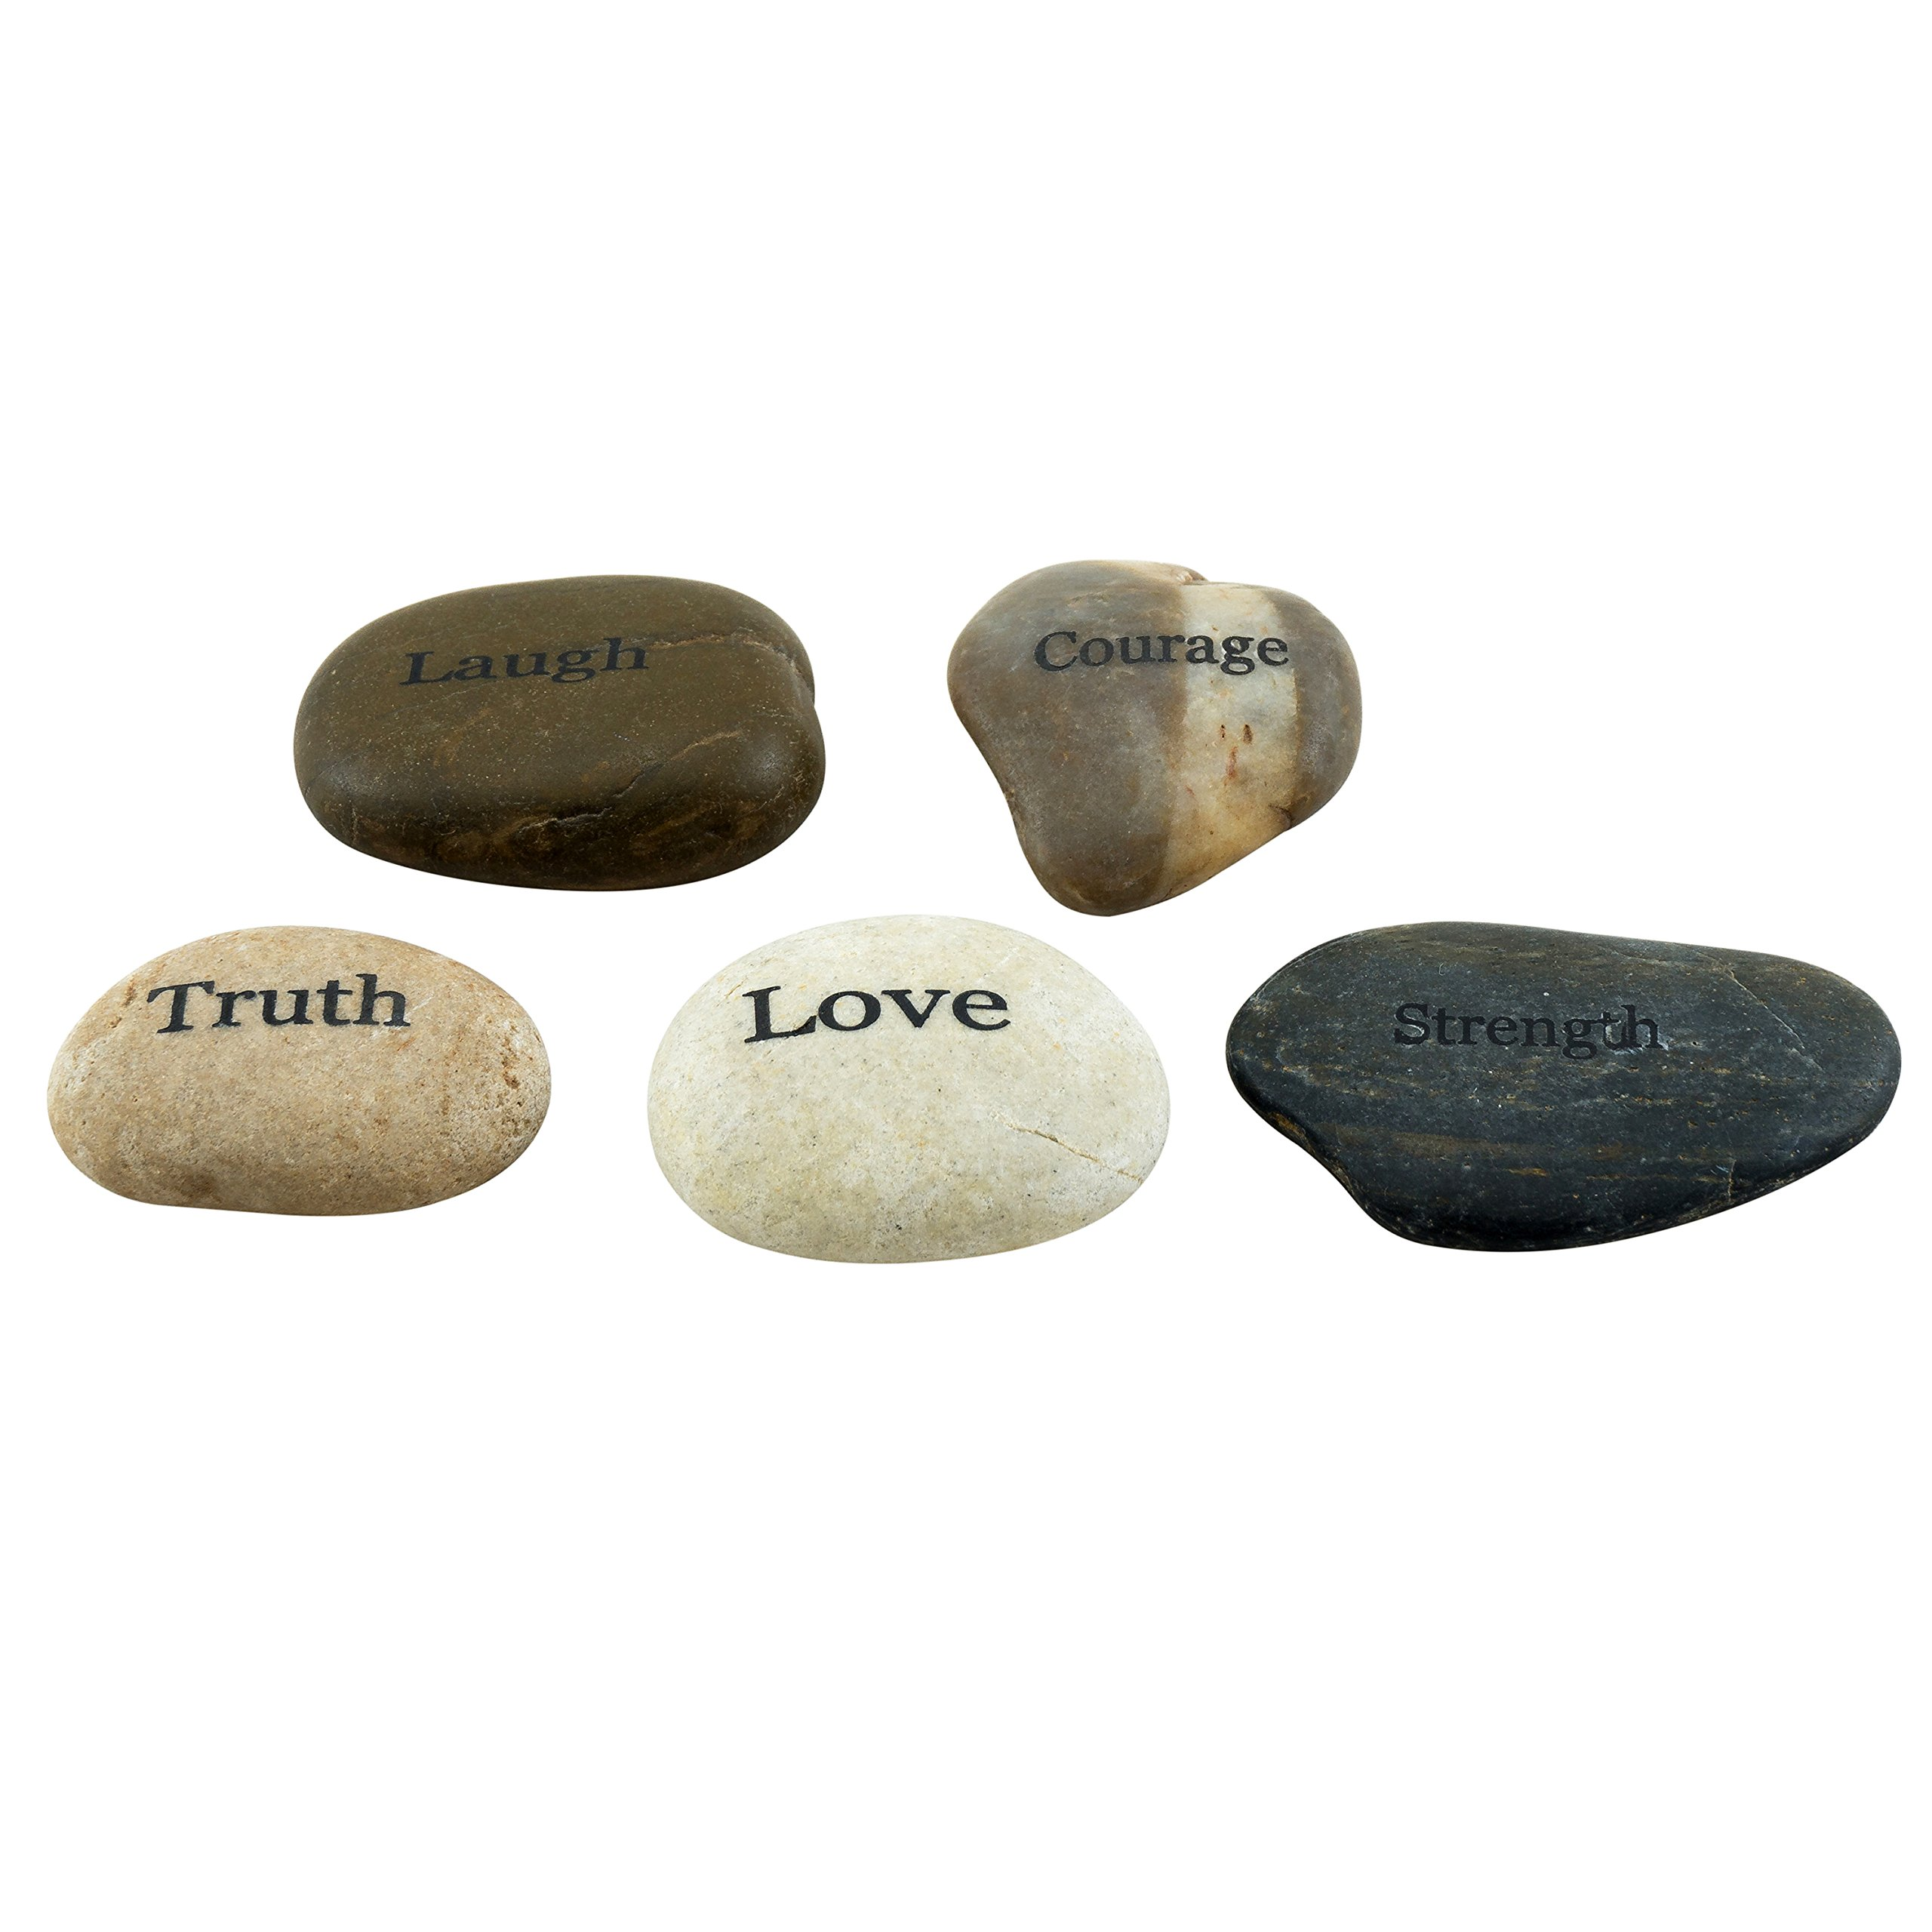 Stonebriar 5pc Engraved Inspirational Stones, Gift Ideas Every Friend Will Love